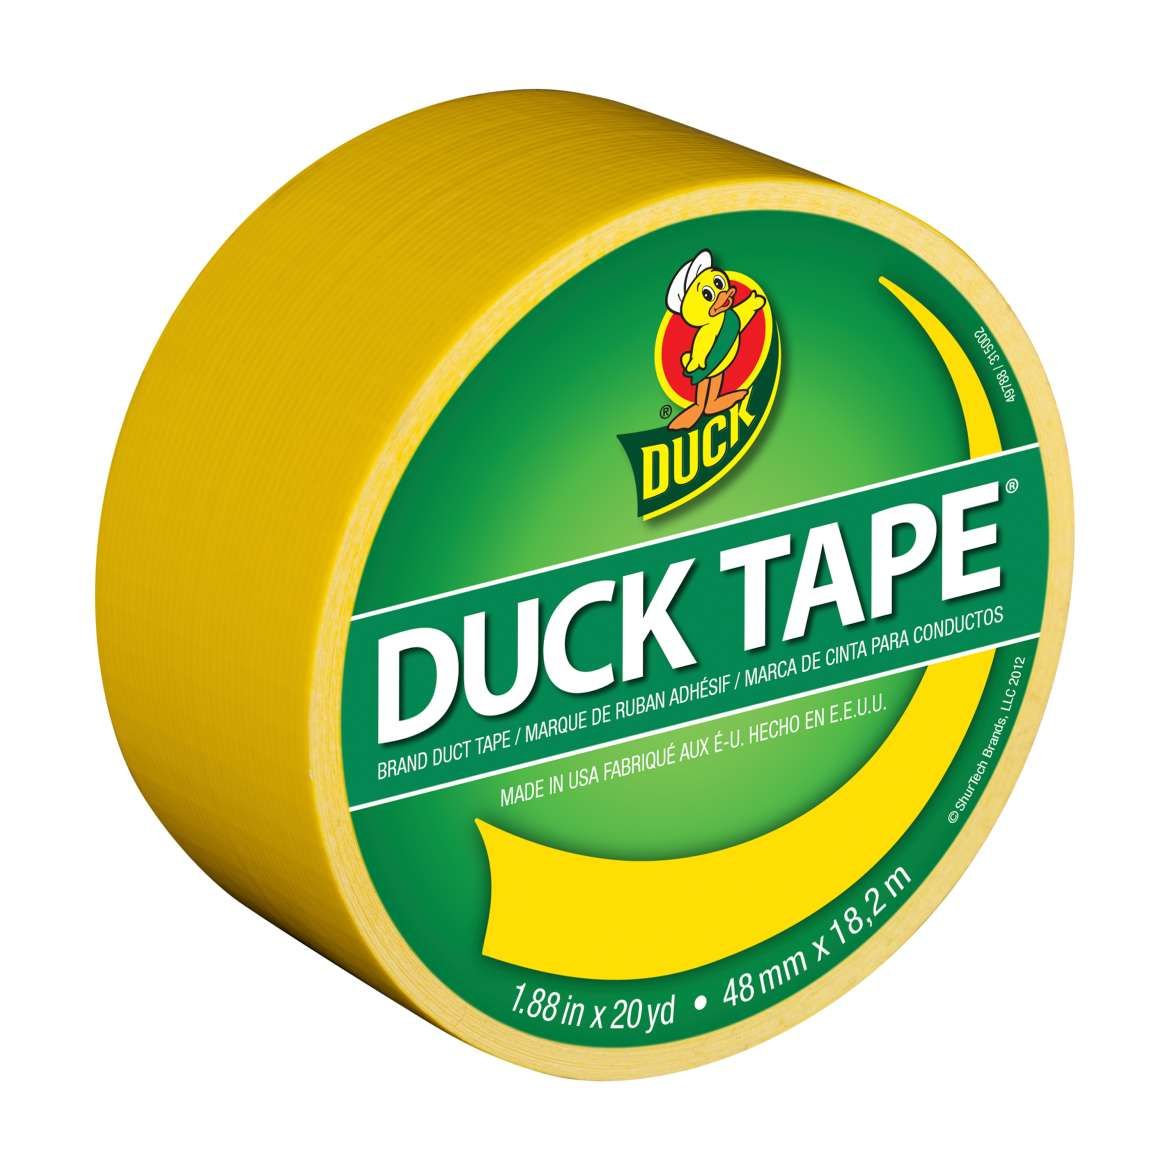 Duck Brand Duct Tape, 1.88 in. x 20 yds., Yellow